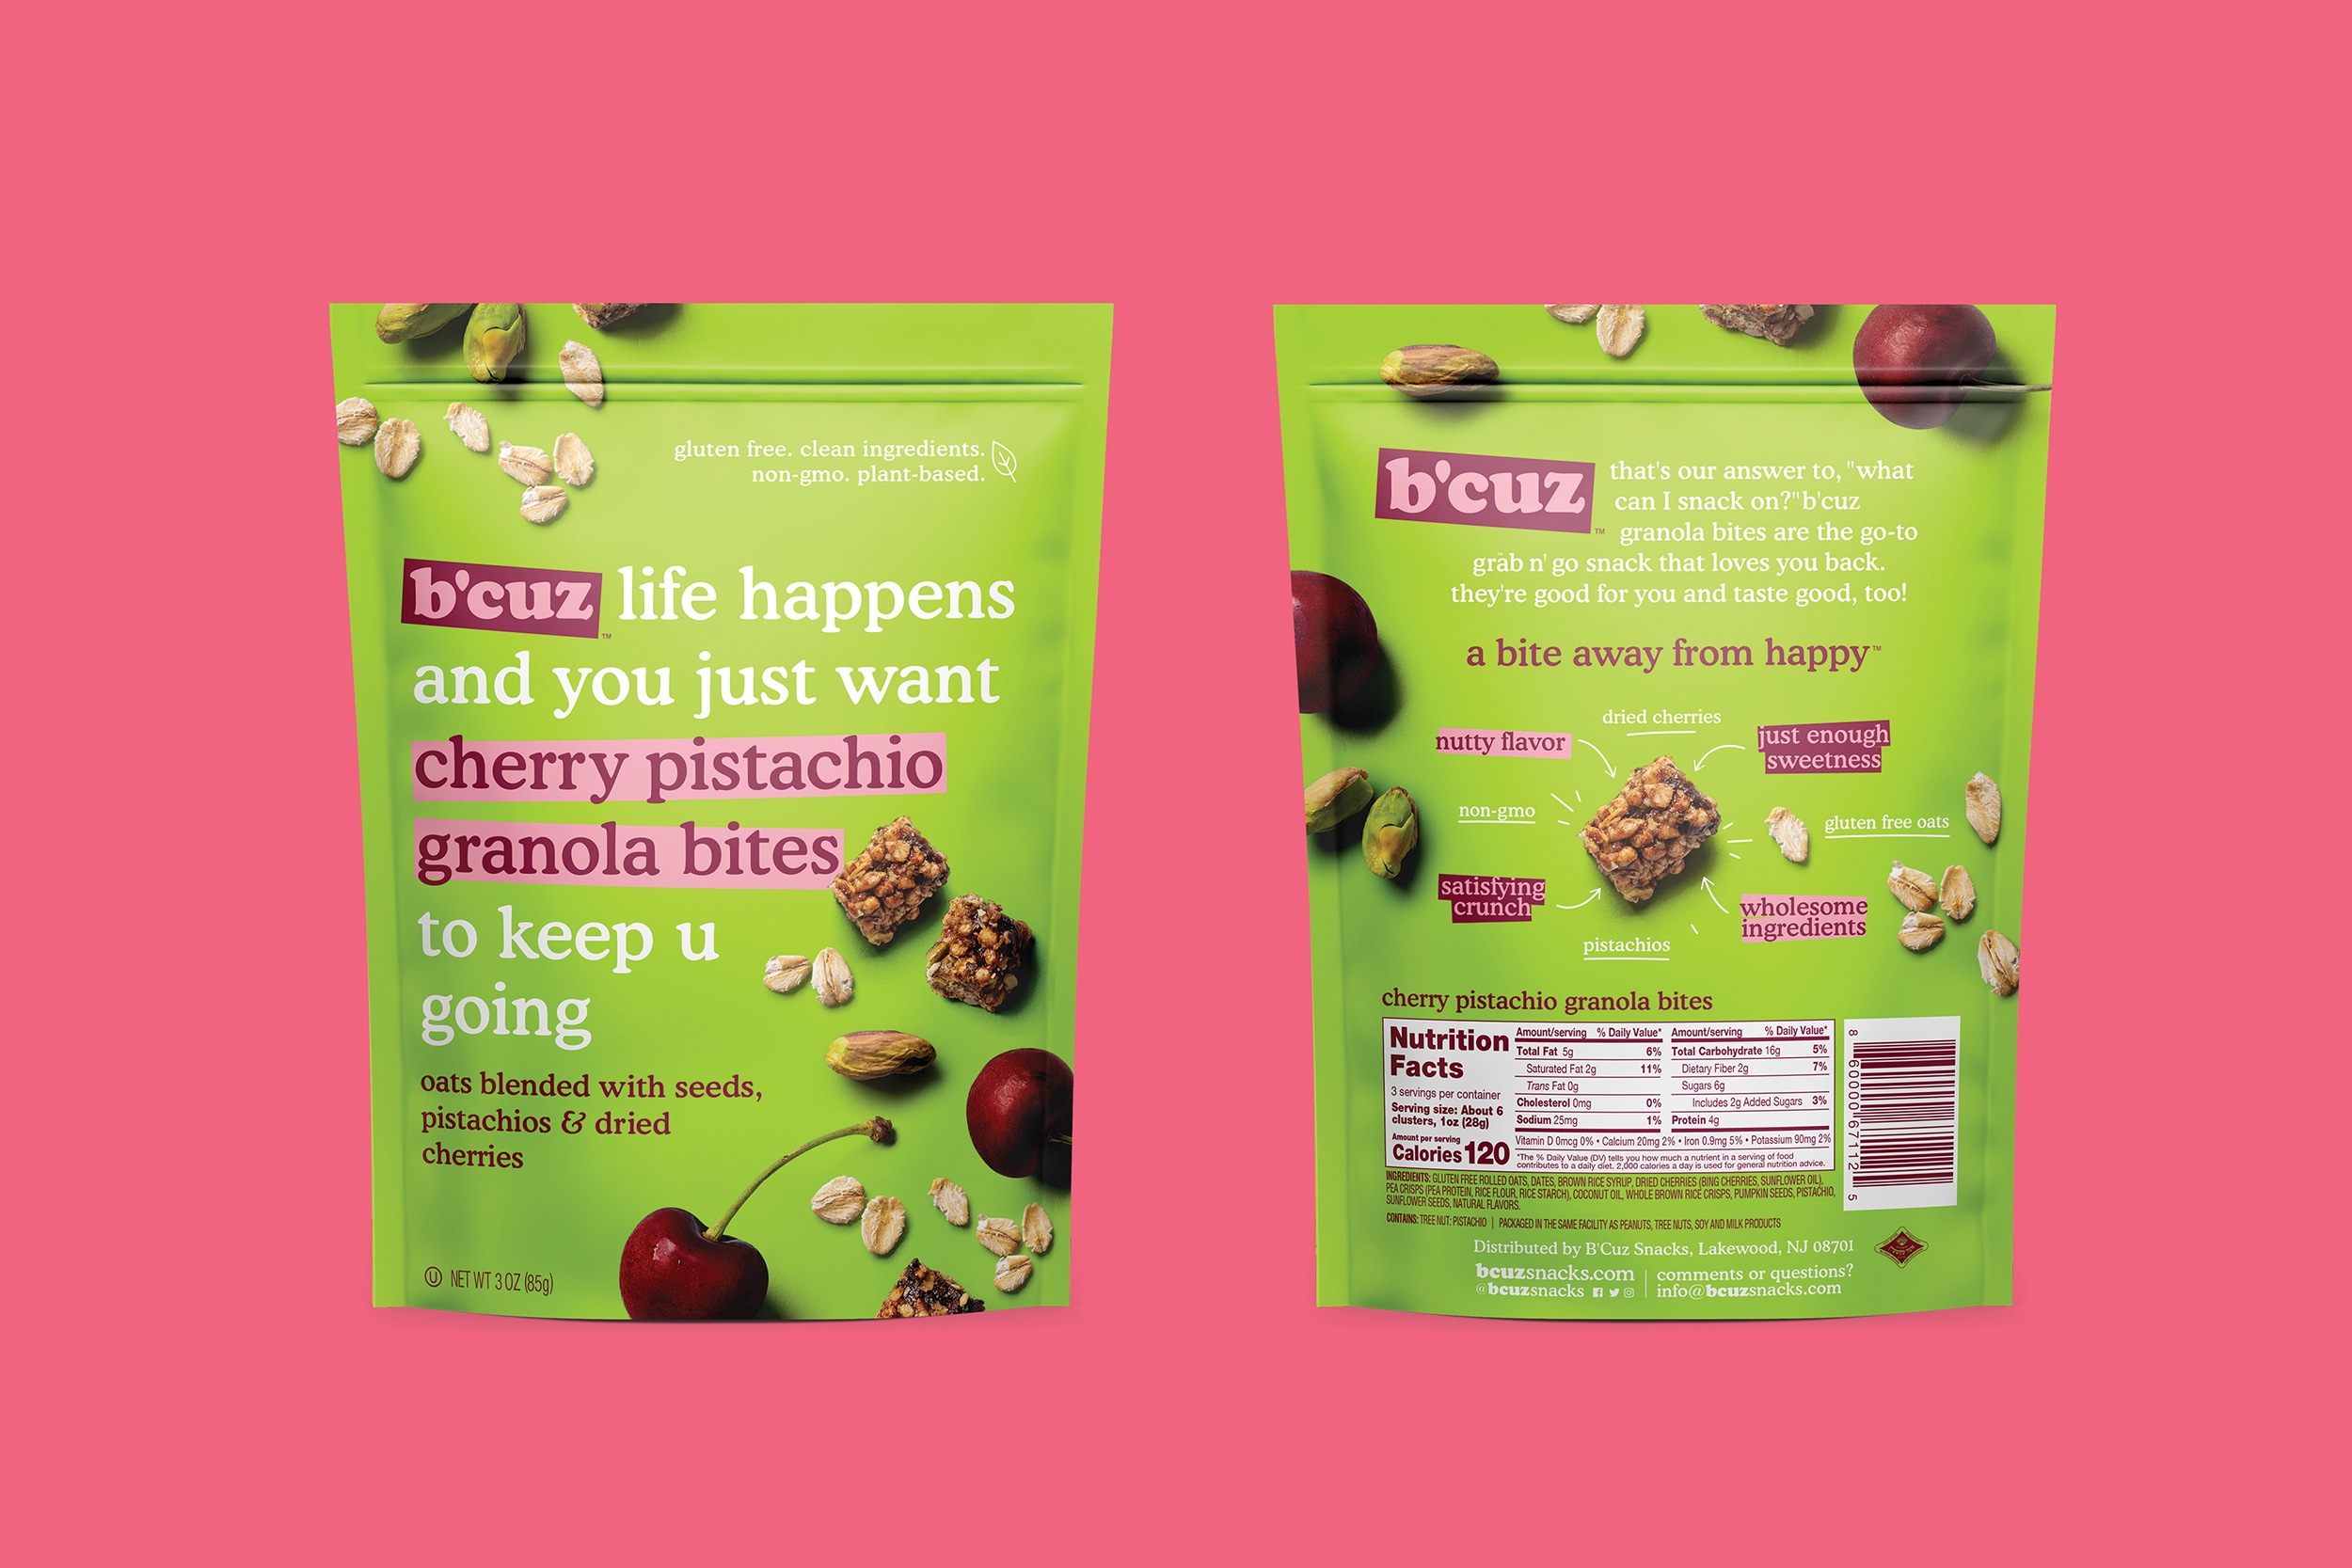 B'Cuz Branding and Packaging Granola Snacks Cherry Pistachio